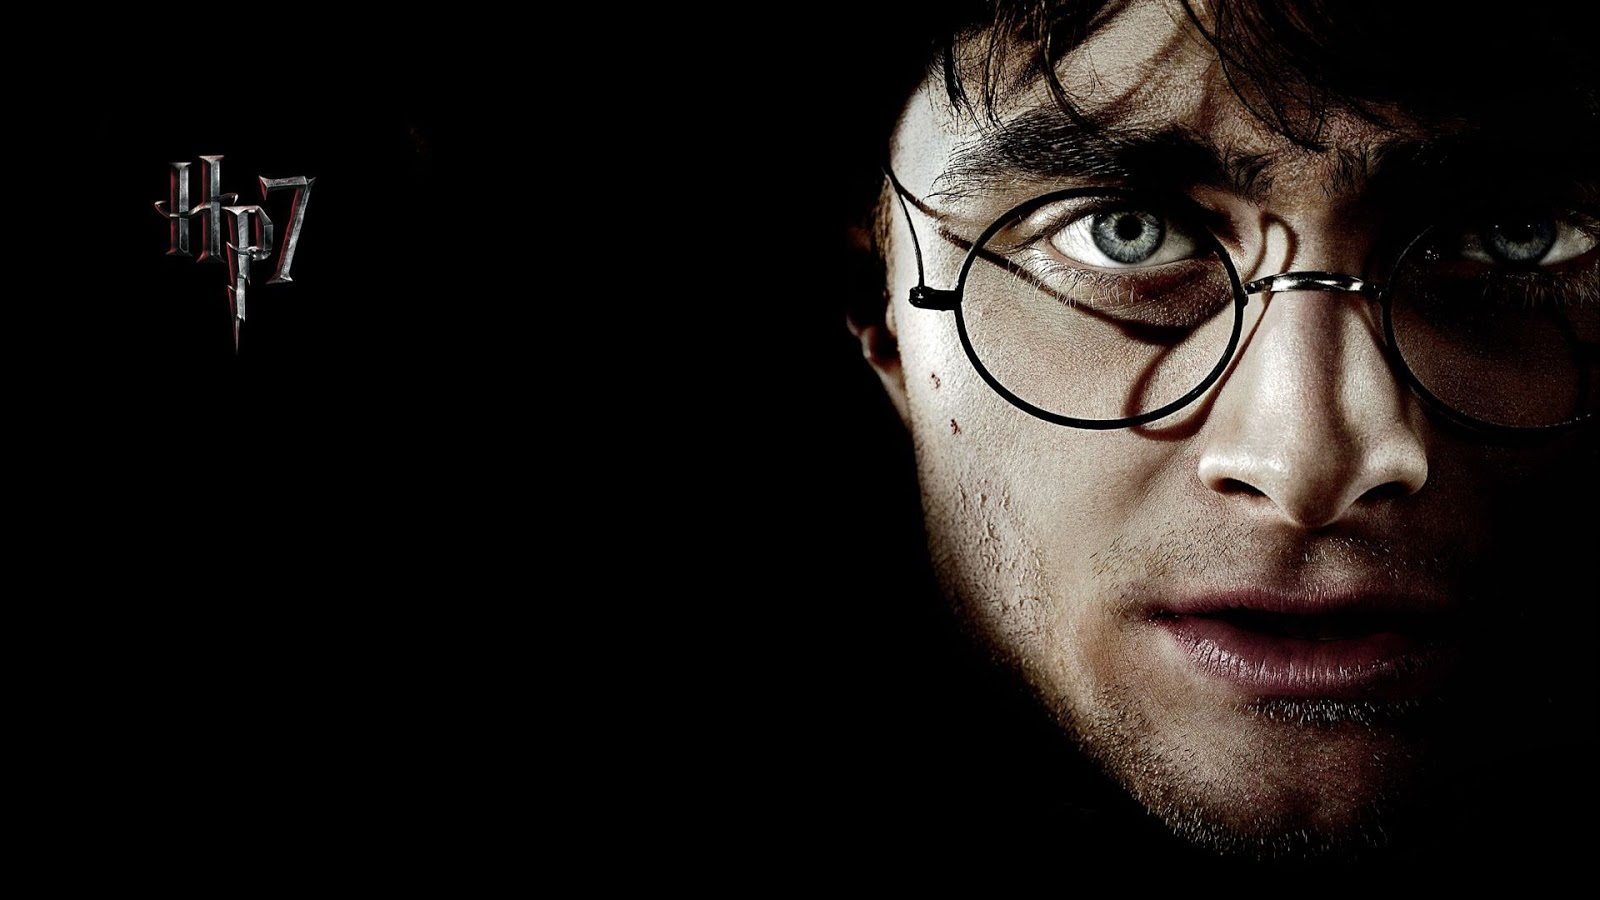 Daniel Radcliffe Harry Potter and the Deathly Hallows Part 1